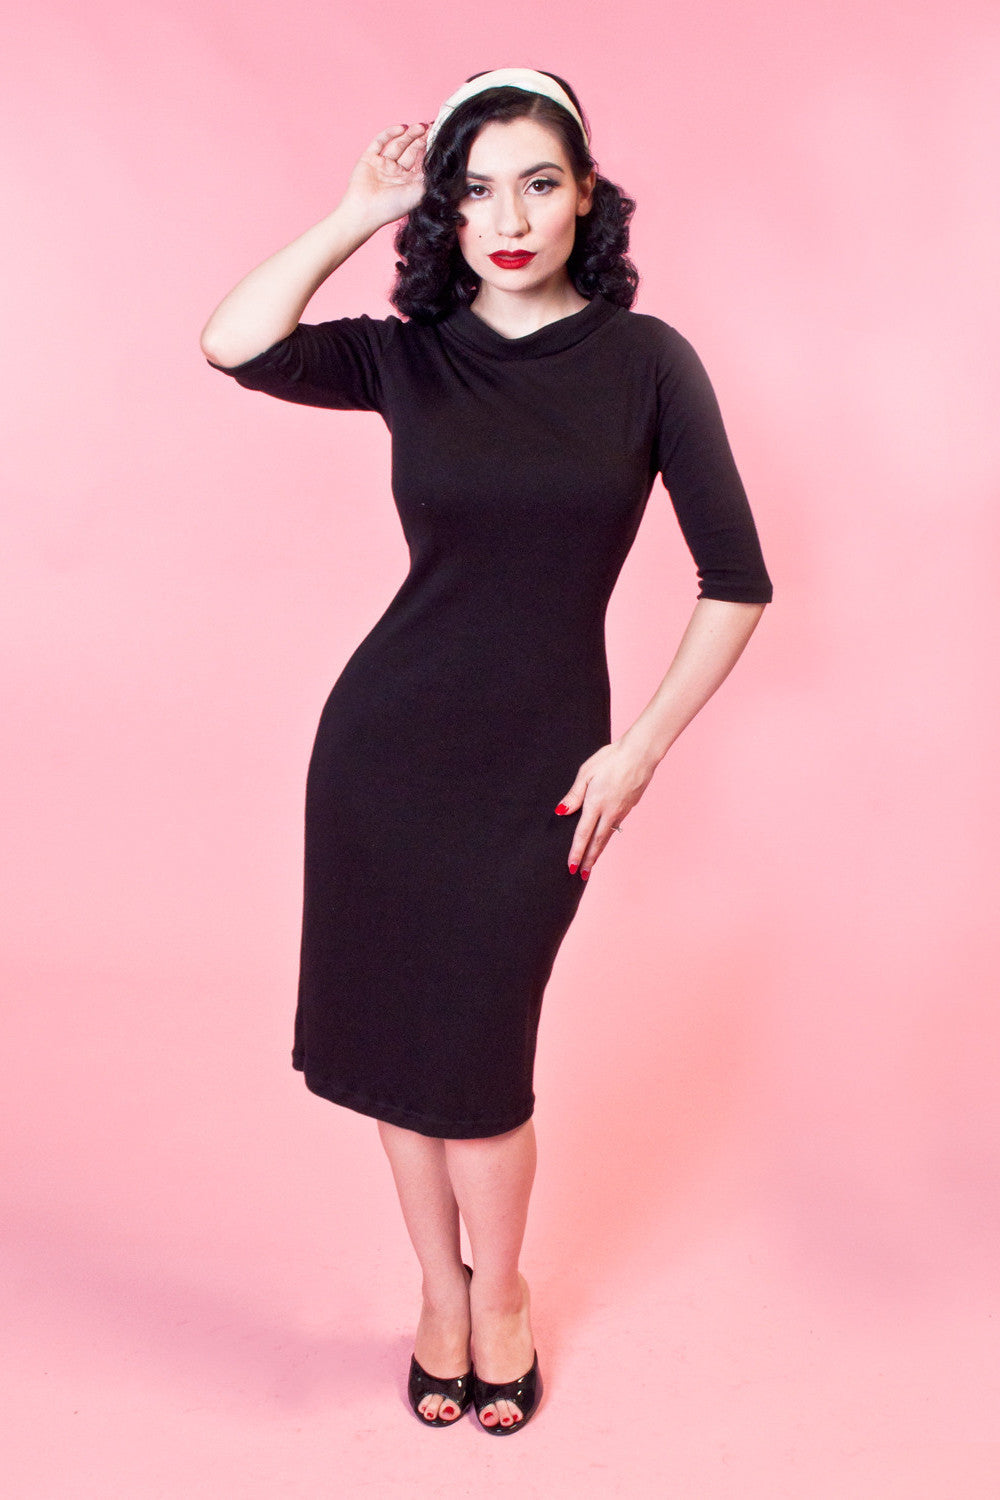 Super Spy Dress - Black - Heart of Haute